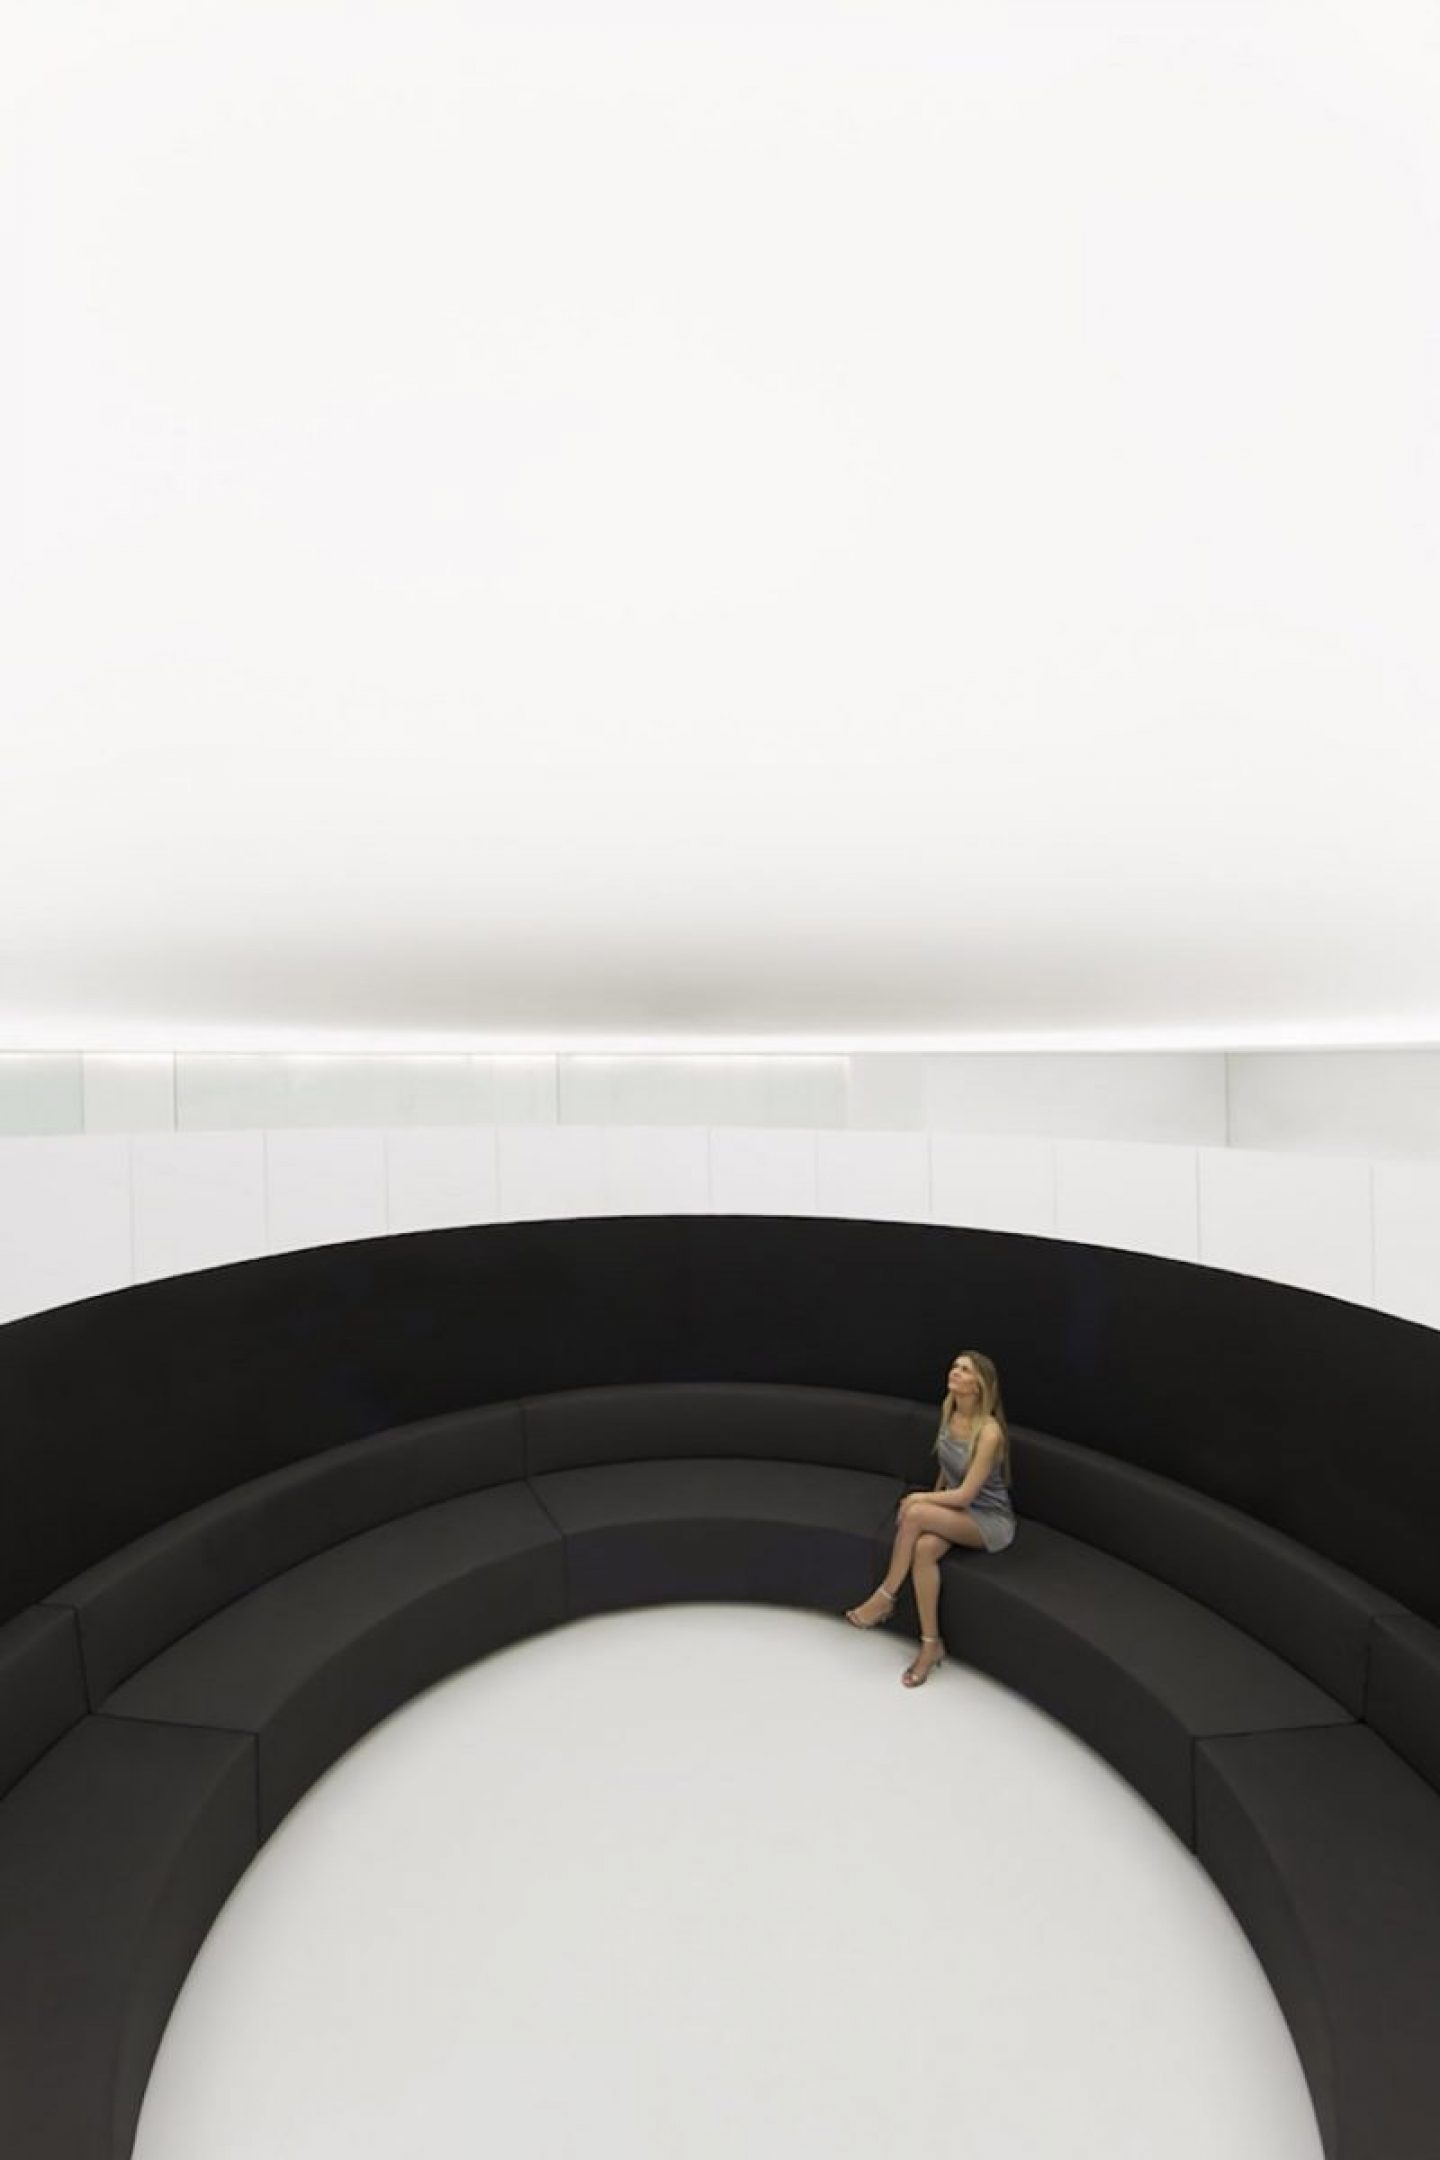 iGNANT_Architecture_PETRA_The_Stone_Atelier_Fran_Silvestre_Arquitectos_8